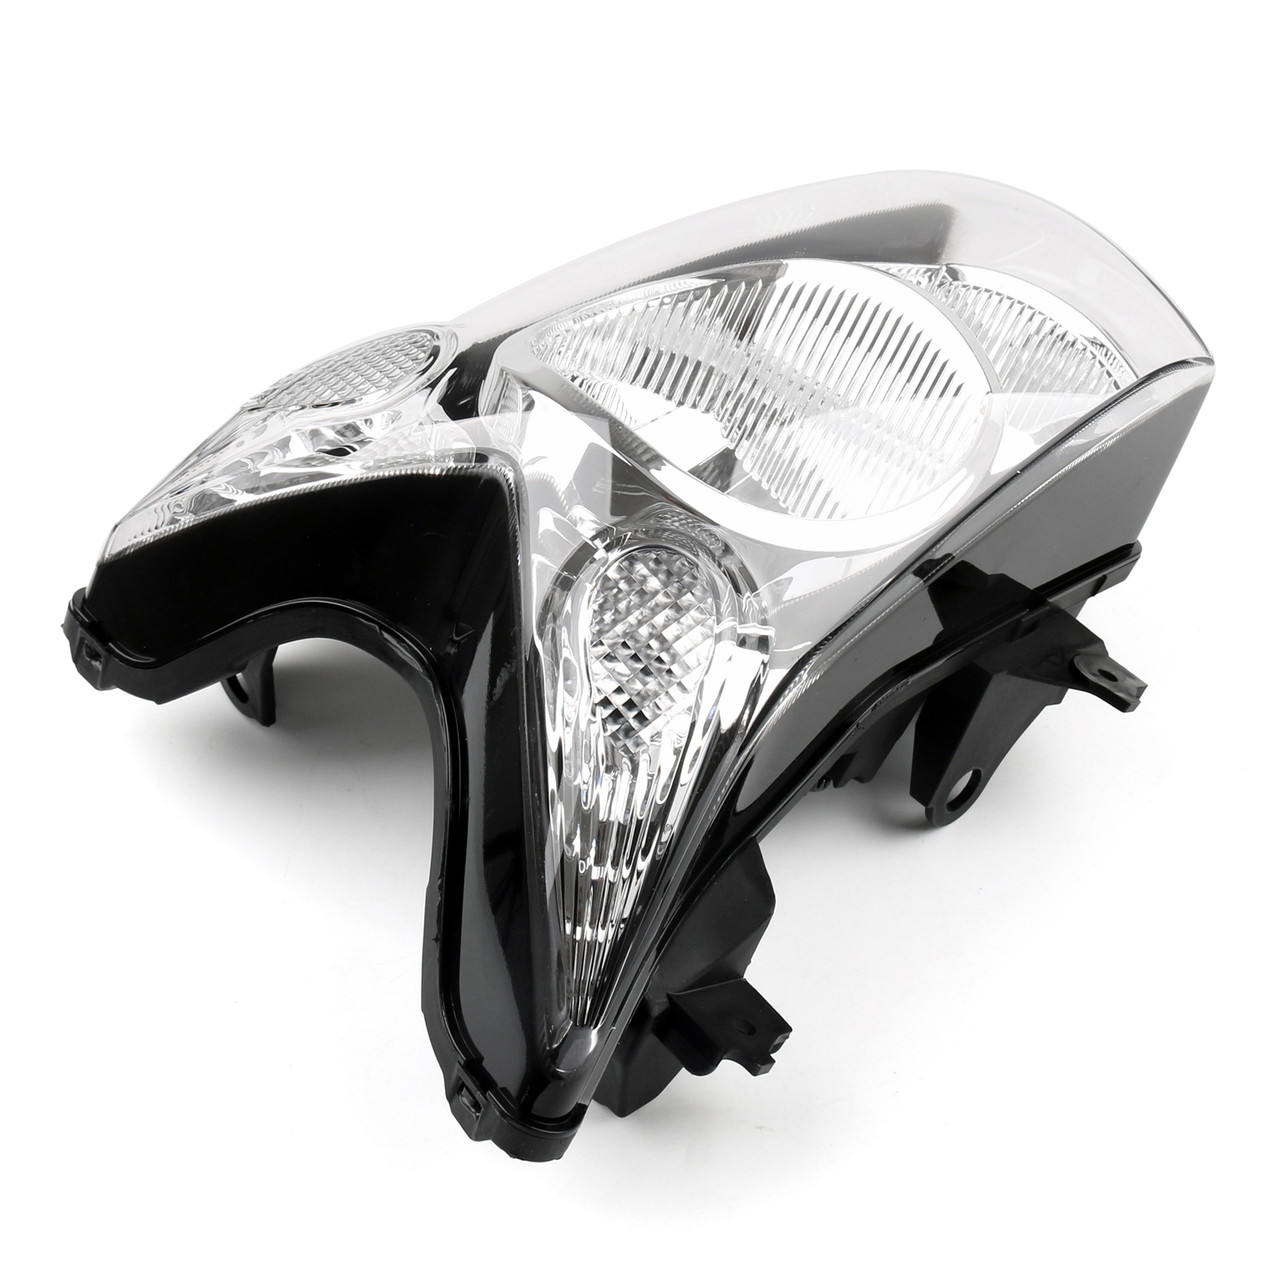 Headlight Assembly Headlamp Kawasaki ER-6N (2009-2010) Clear